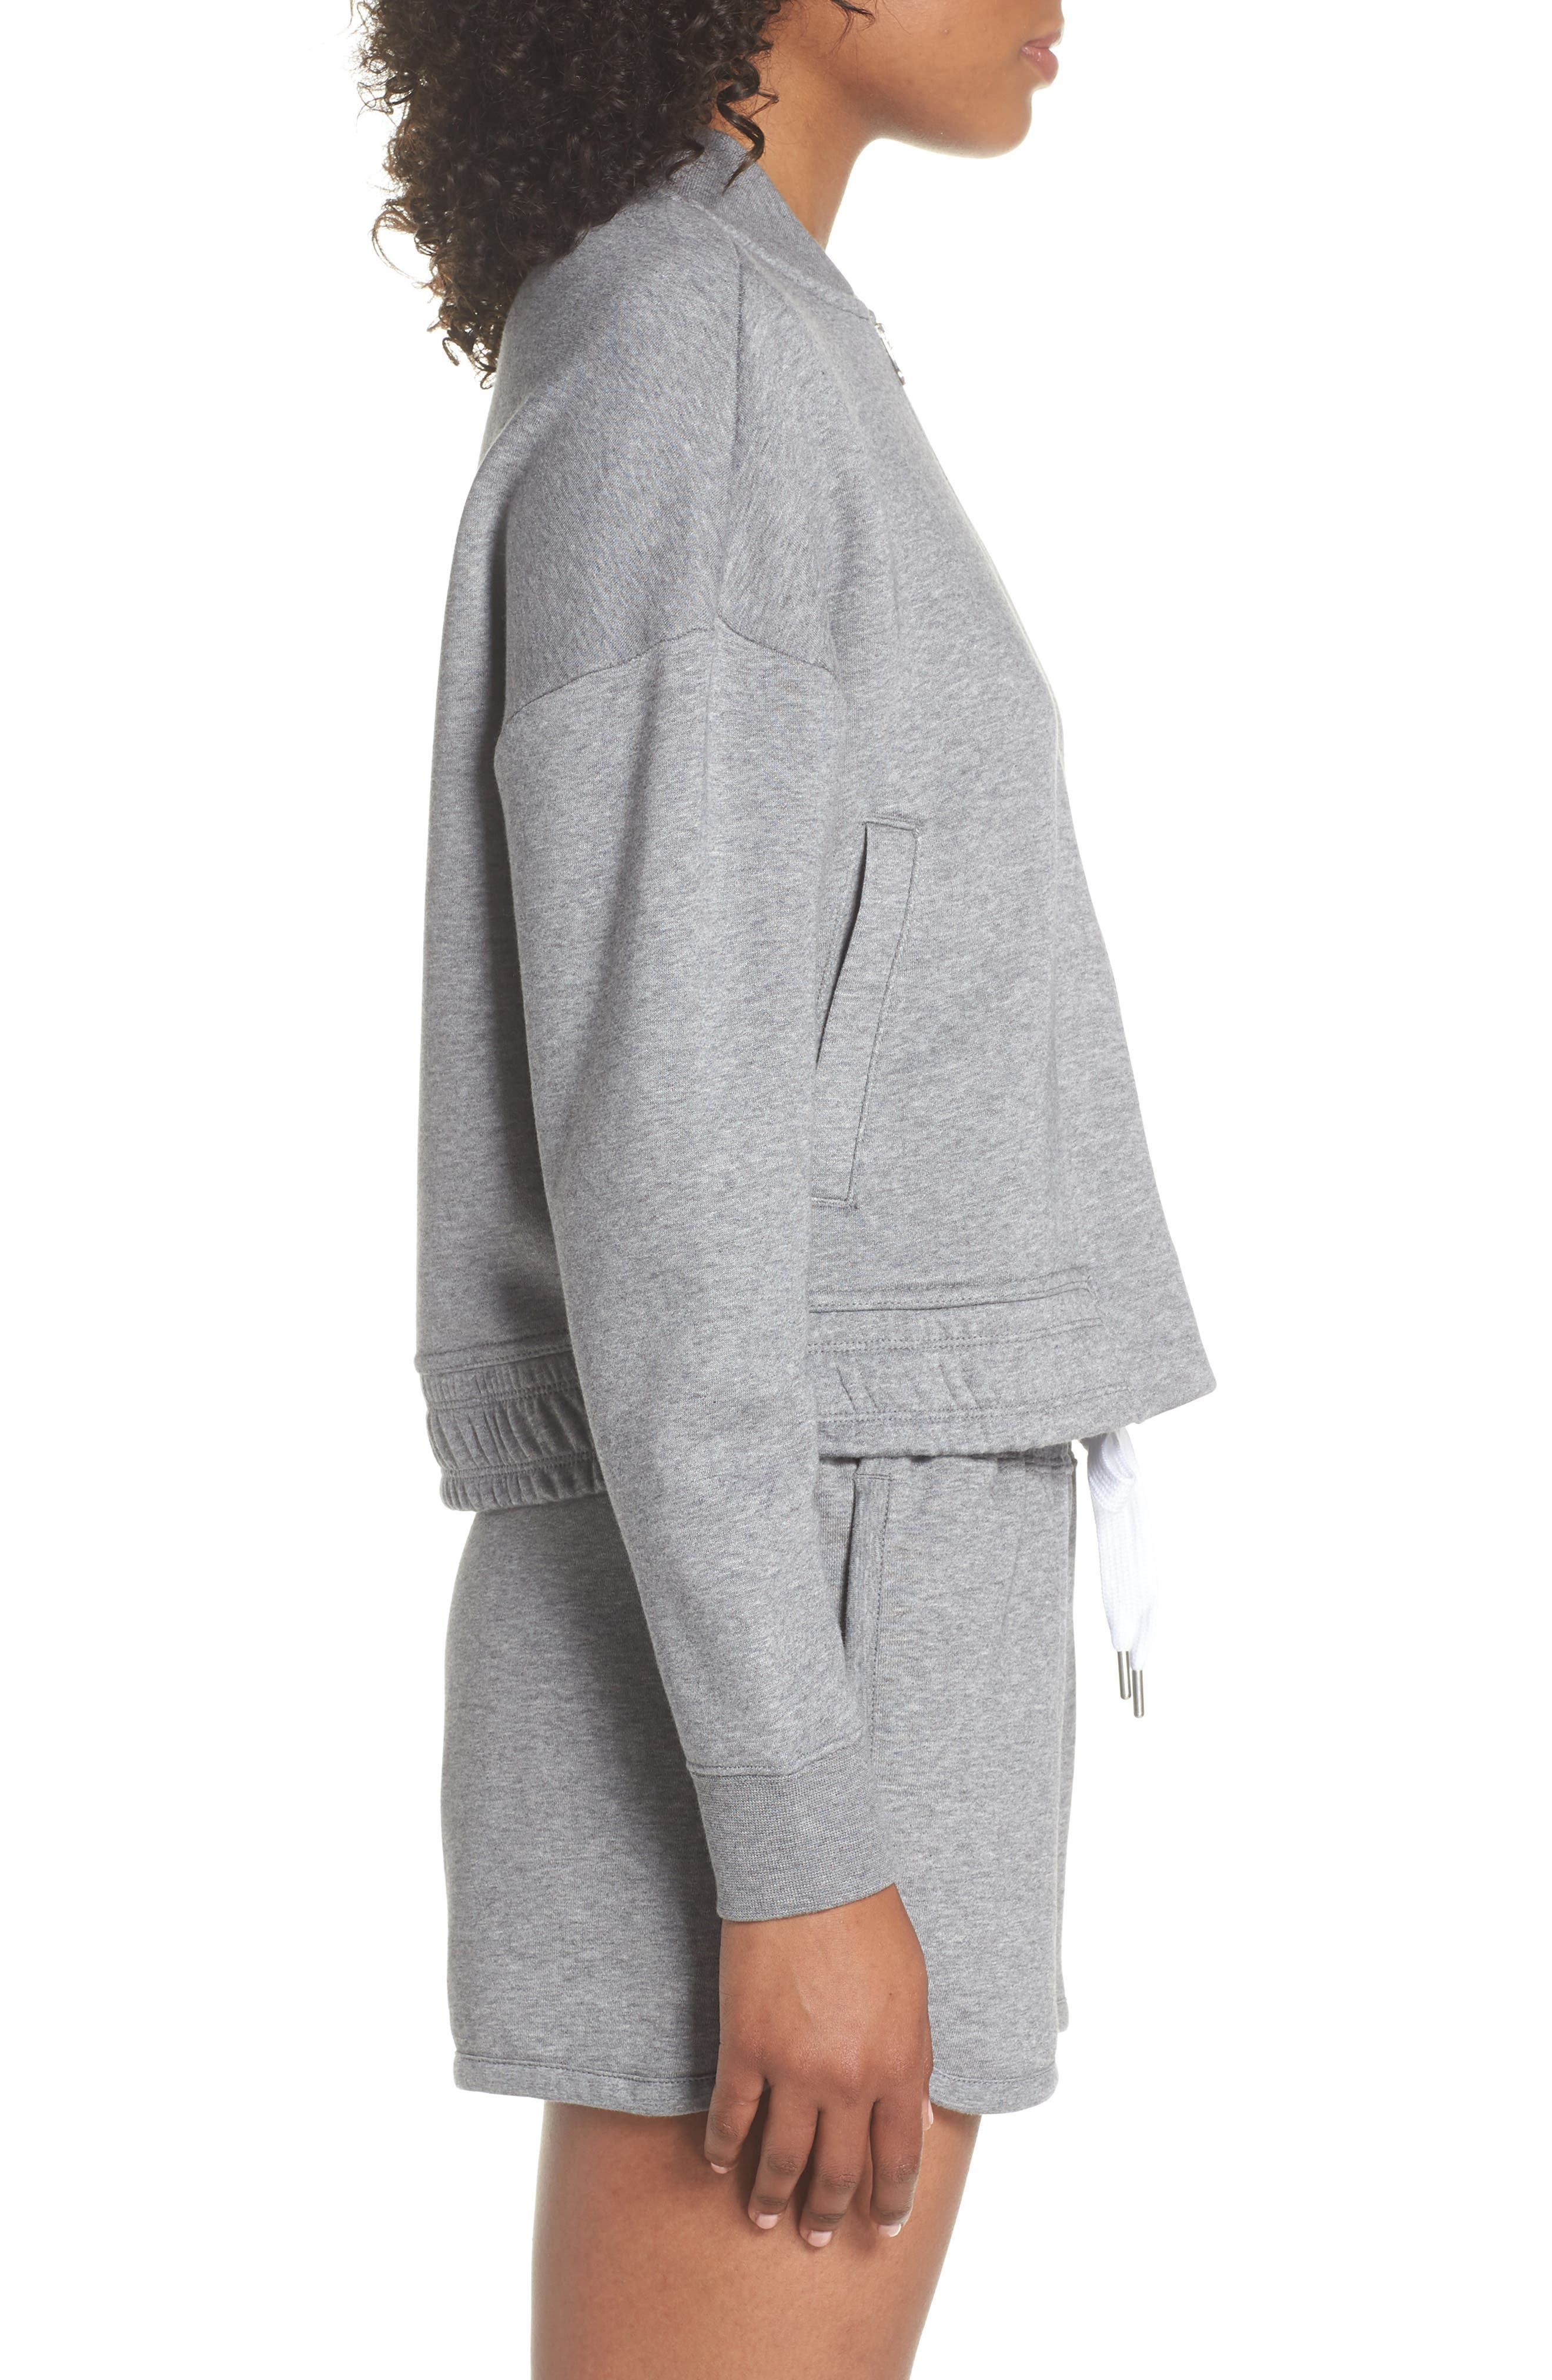 Sportswear Rally Jacket,                             Alternate thumbnail 3, color,                             Carbon Heather/ Cool Grey